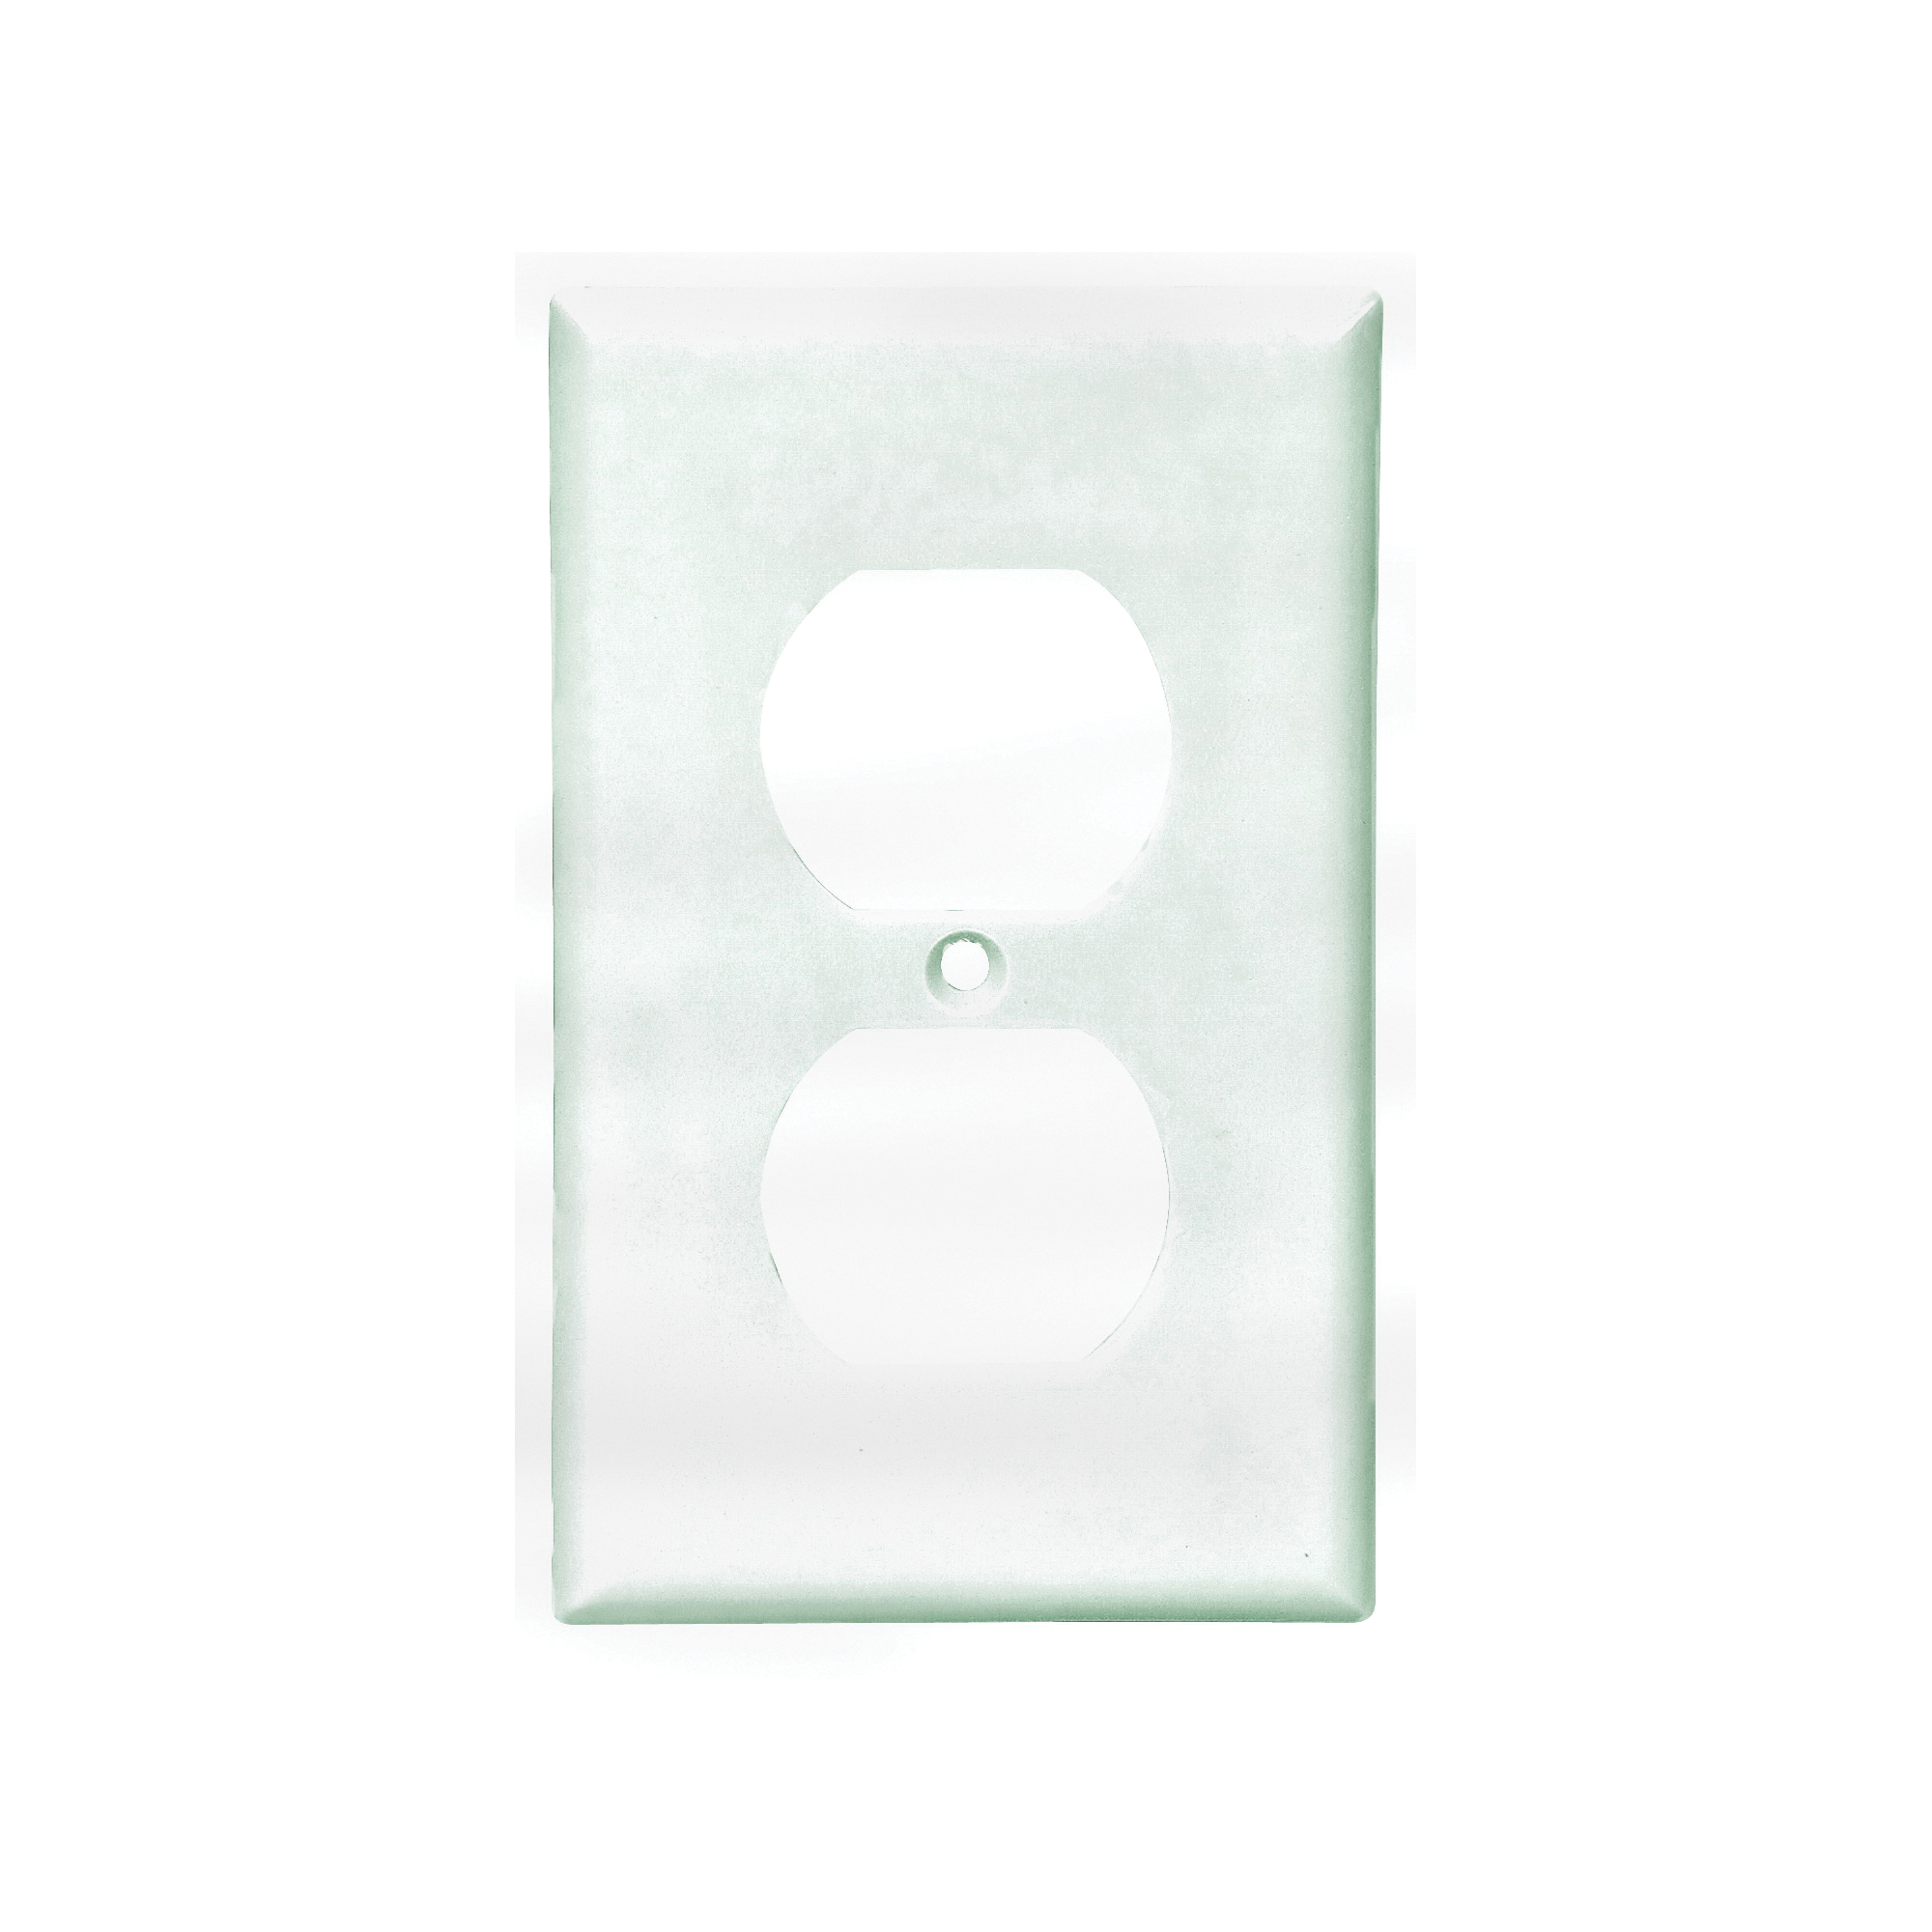 Picture of Eaton Wiring Devices 2132W Wallplate, 4-1/2 in L, 2-3/4 in W, 1-Gang, Thermoset, White, High-Gloss